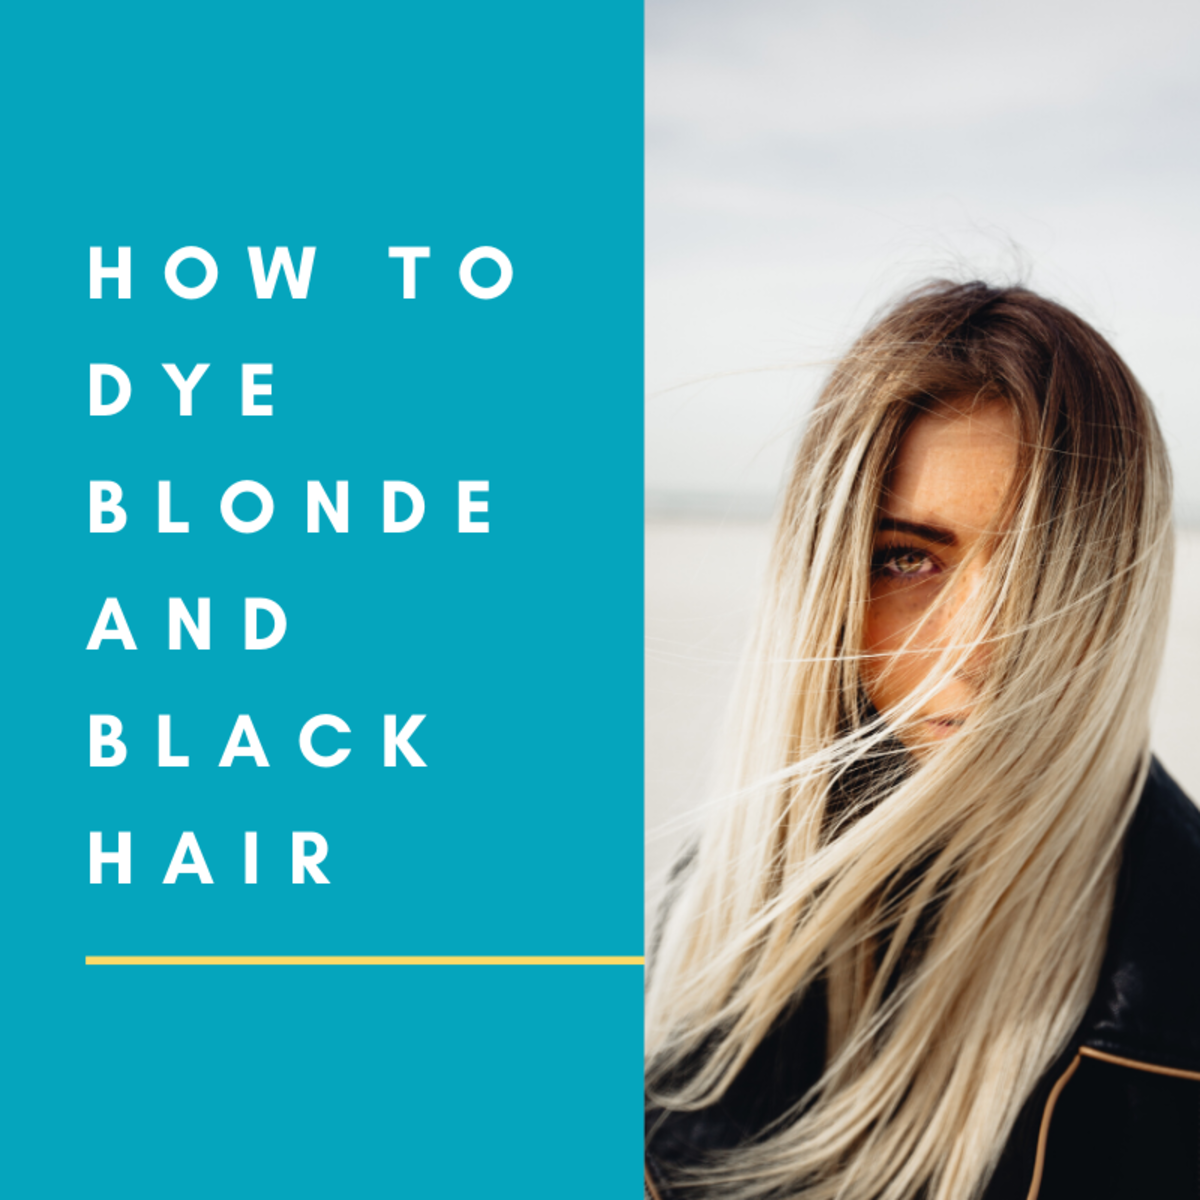 How to Dye Blonde and Black Hair